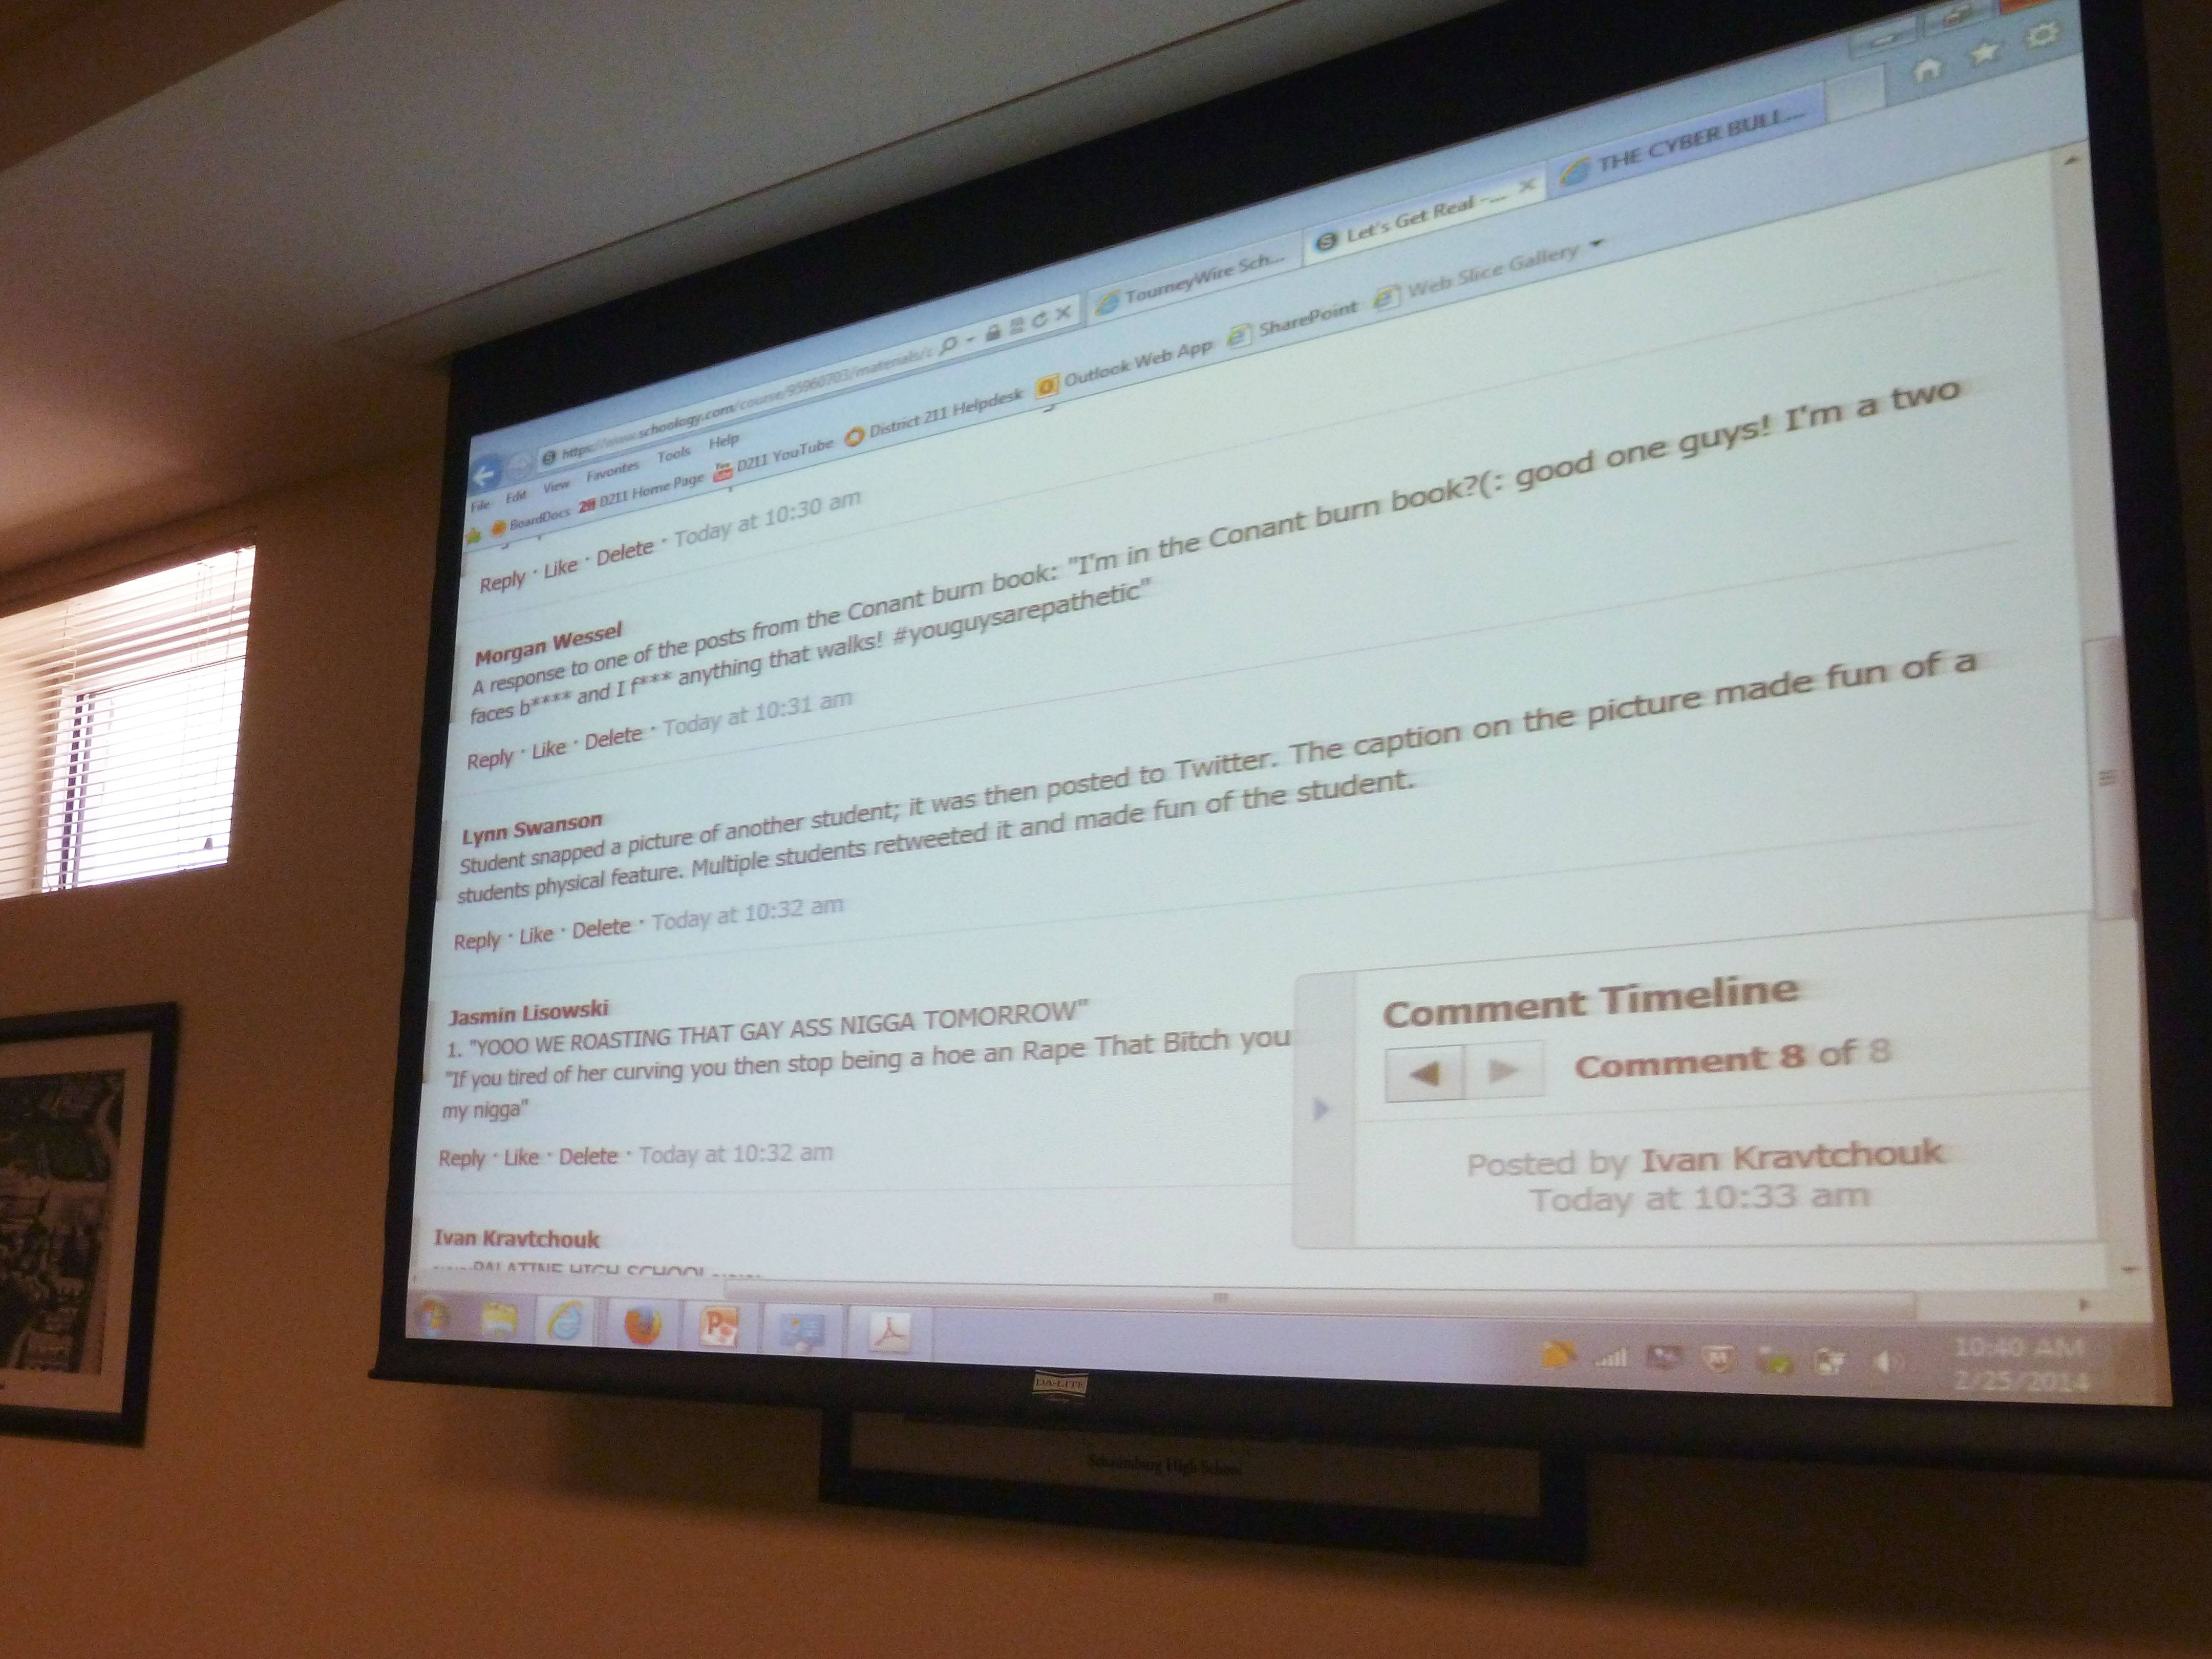 A projector displays an example of cyberbullying or negative comments posted online.